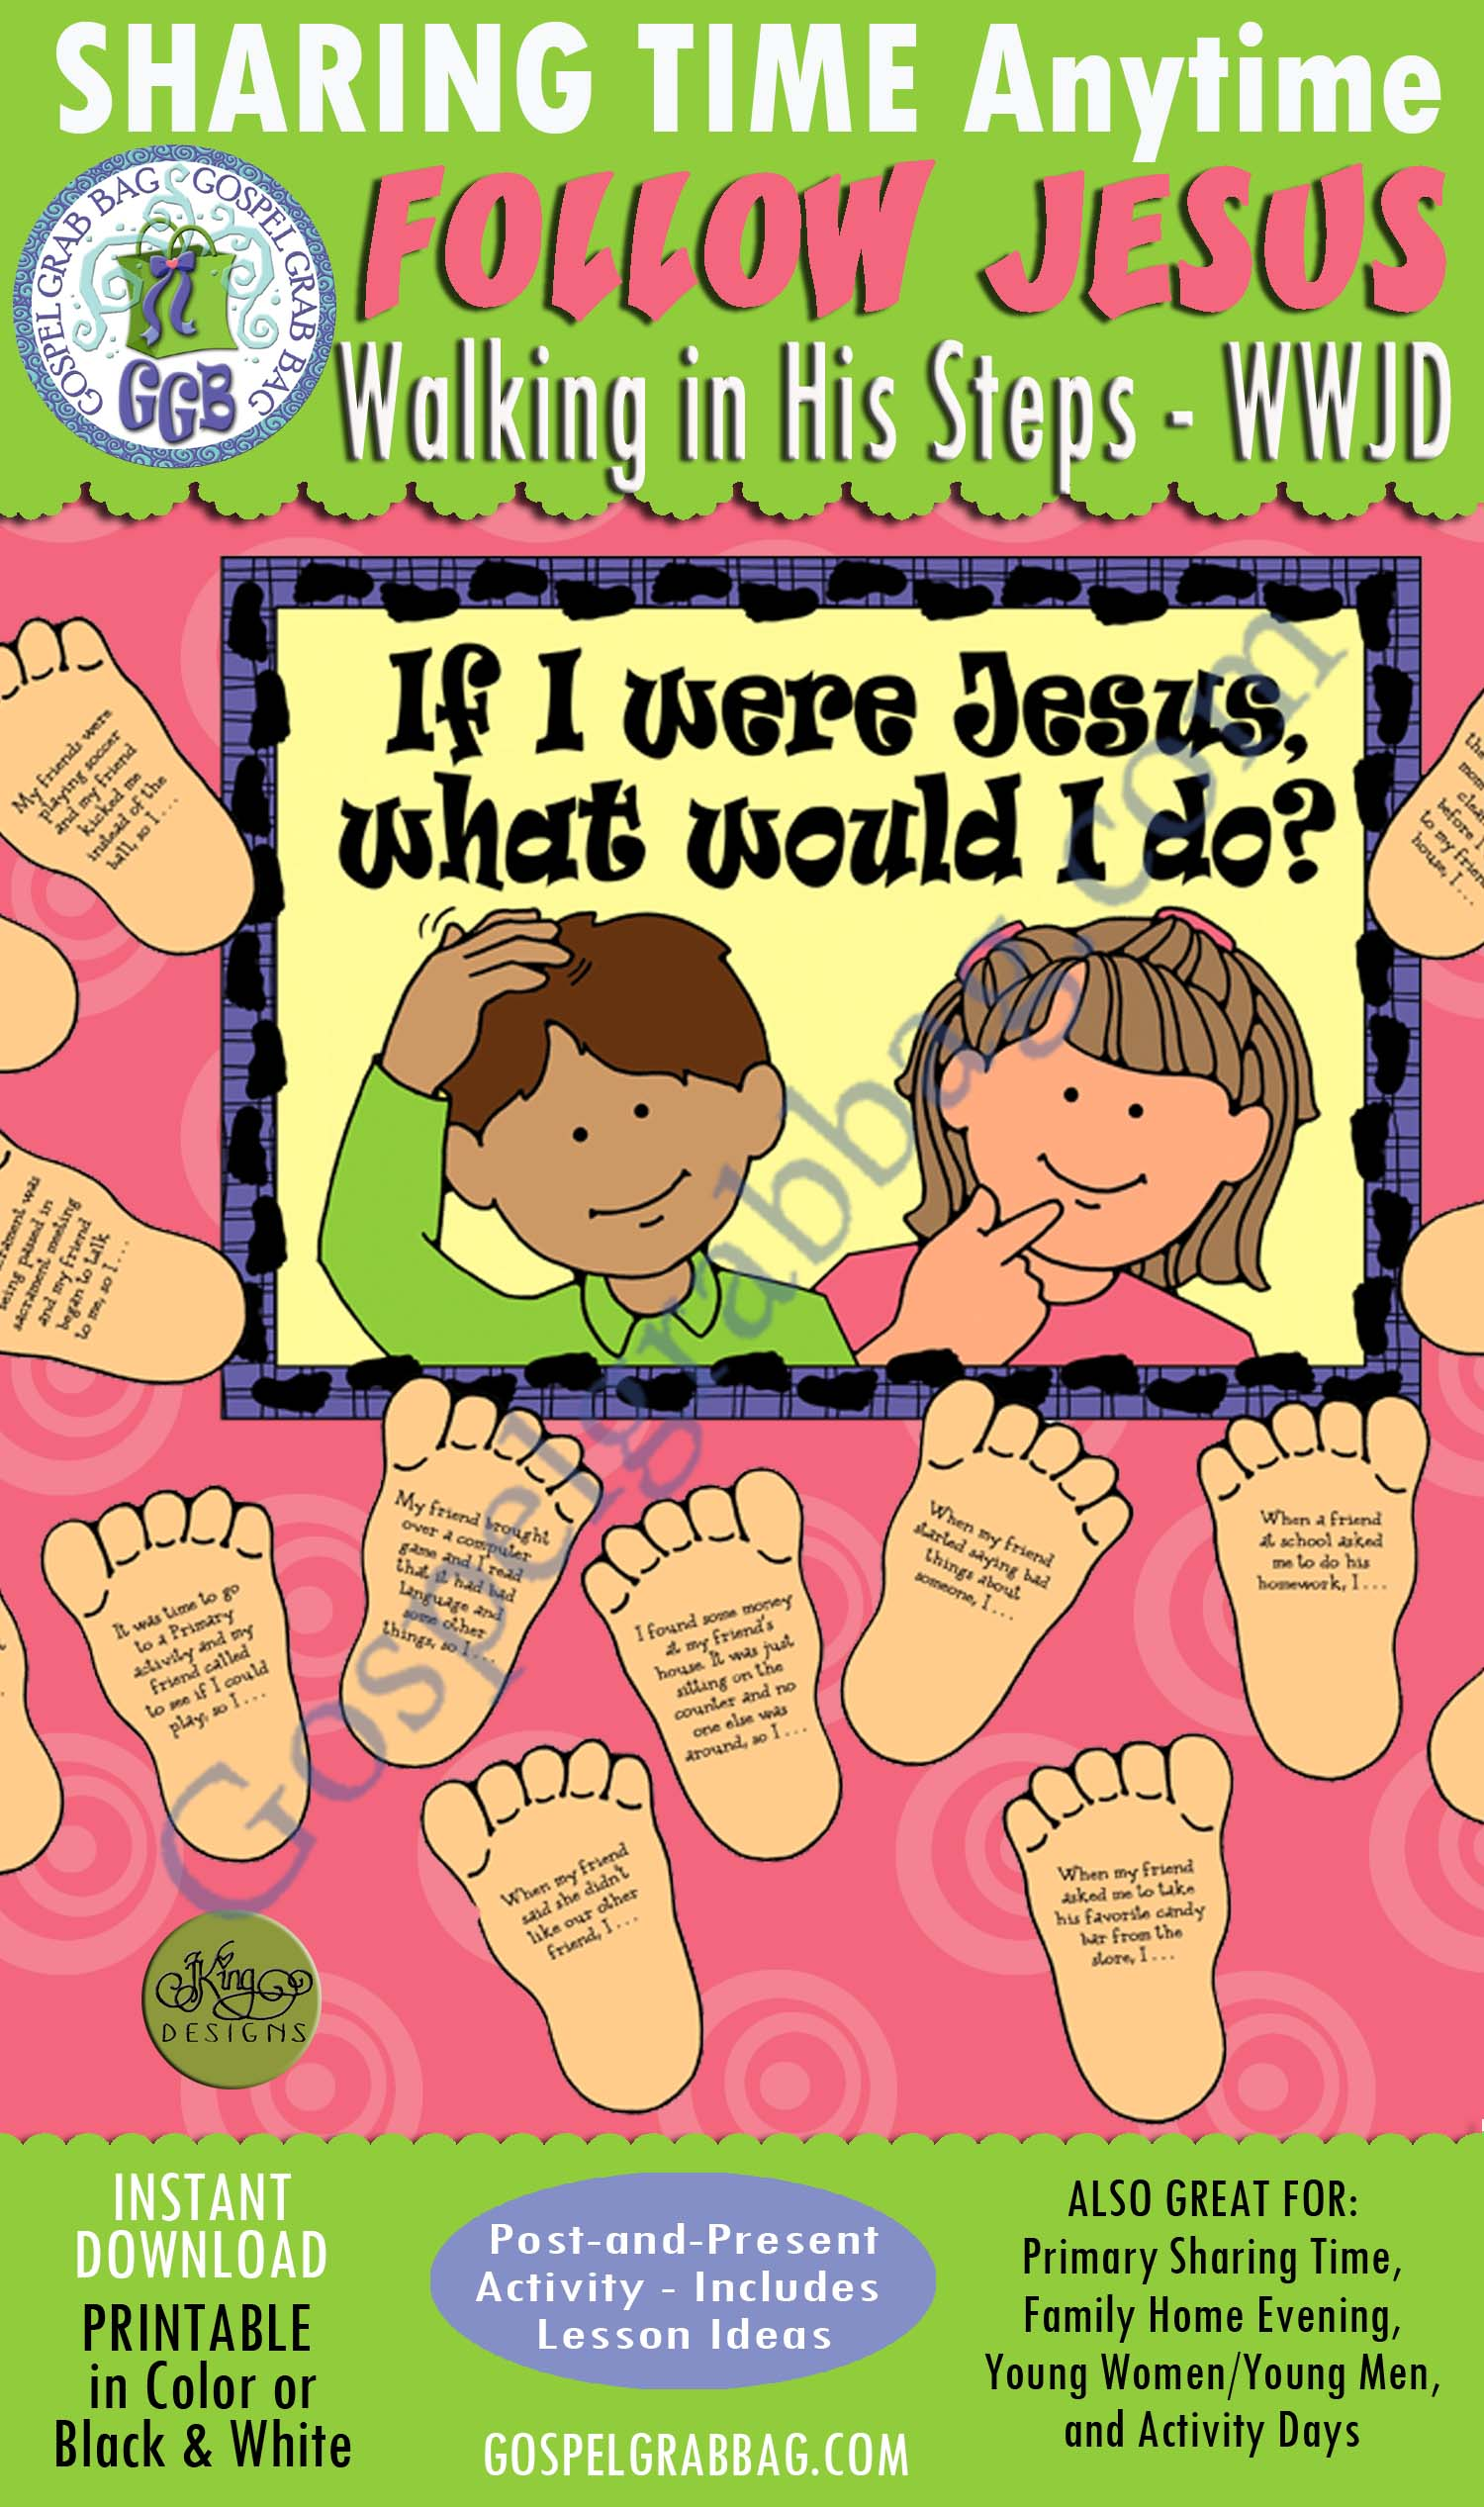 "$3.50 FOLLOW JESUS: Activity ""If I Were Jesus, What Would I Do?"" Walking in His Steps POST-AND-PRESENT, Primary Sharing Time, Bible Study, Sunday School, Family Home Evening, GospelGrabBag.com"